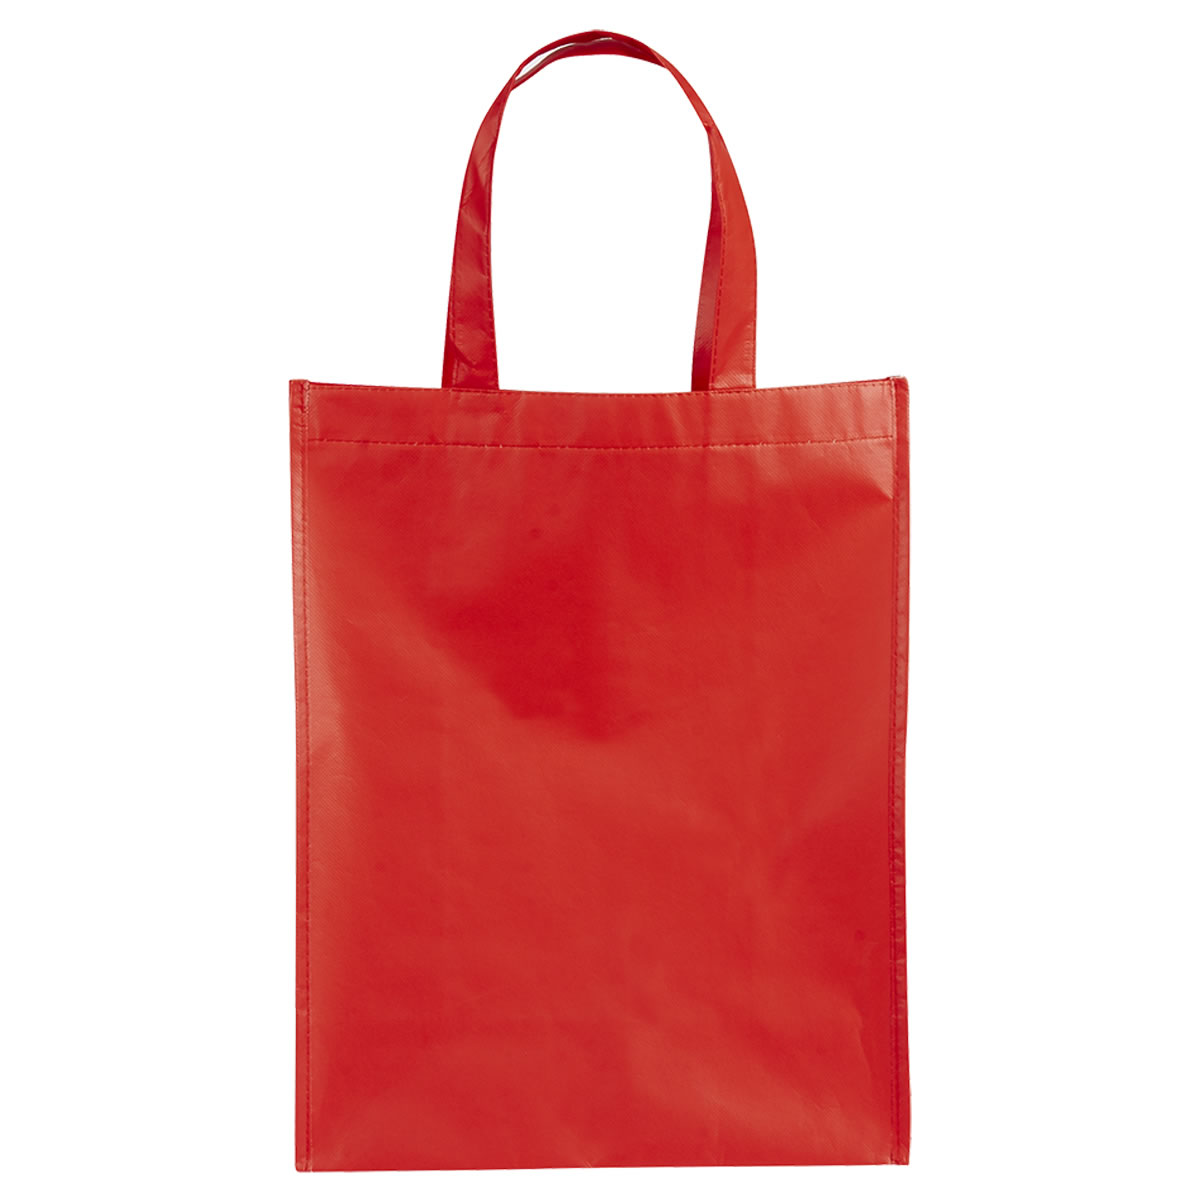 BOLSA AVERY COLOR ROJO